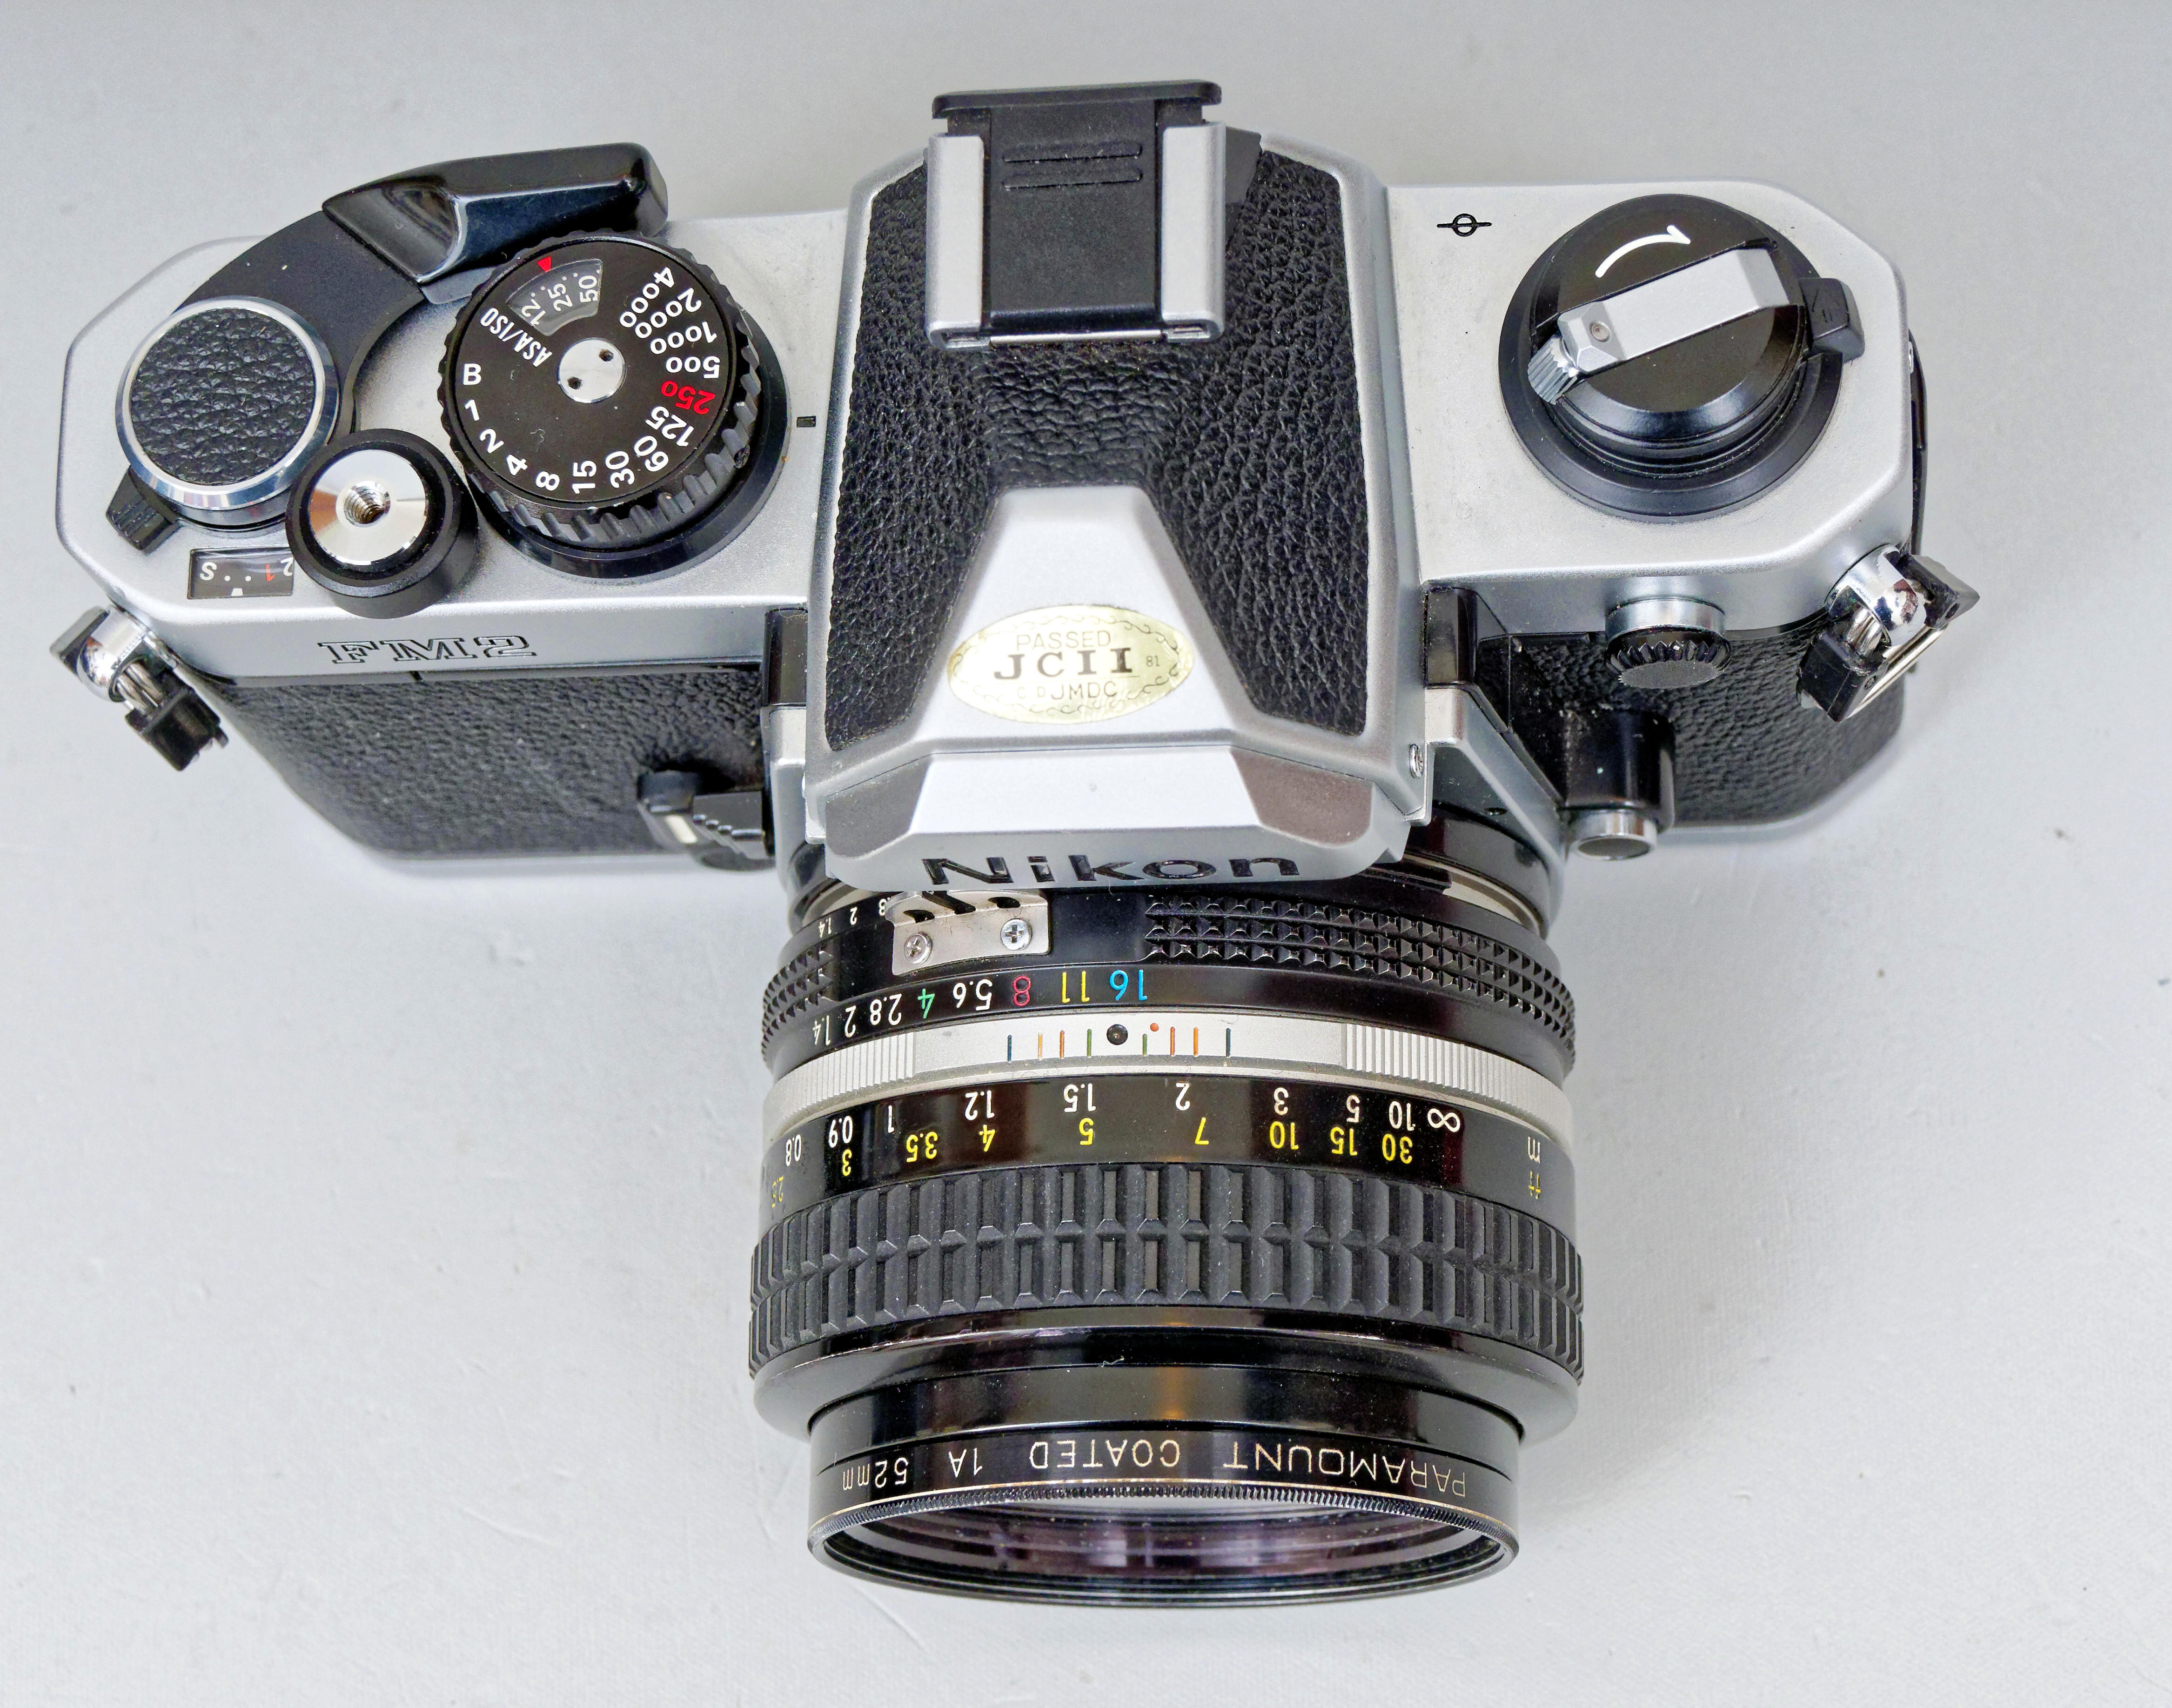 This should be Nikon-FM2-4.jpeg.  Is it missing?